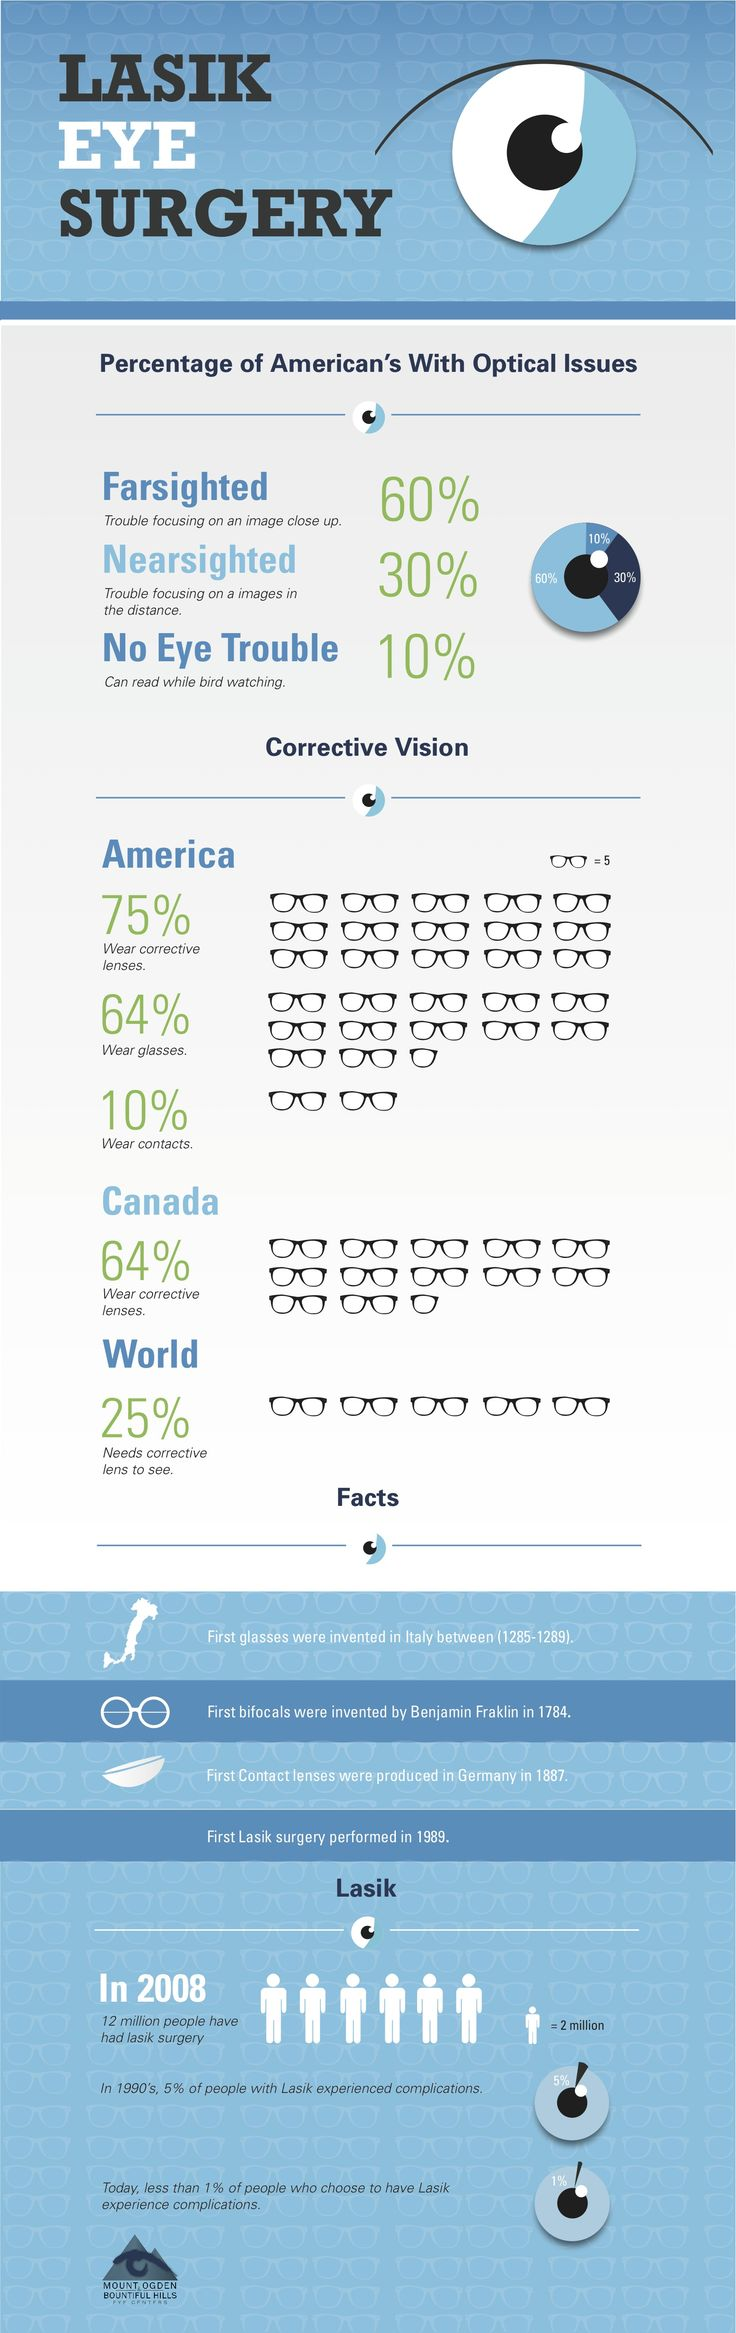 An illustration of the issues Americans and those around the world face in regards to eyesight. It shows how many people suffer from what type of eye | Updegraff Vision